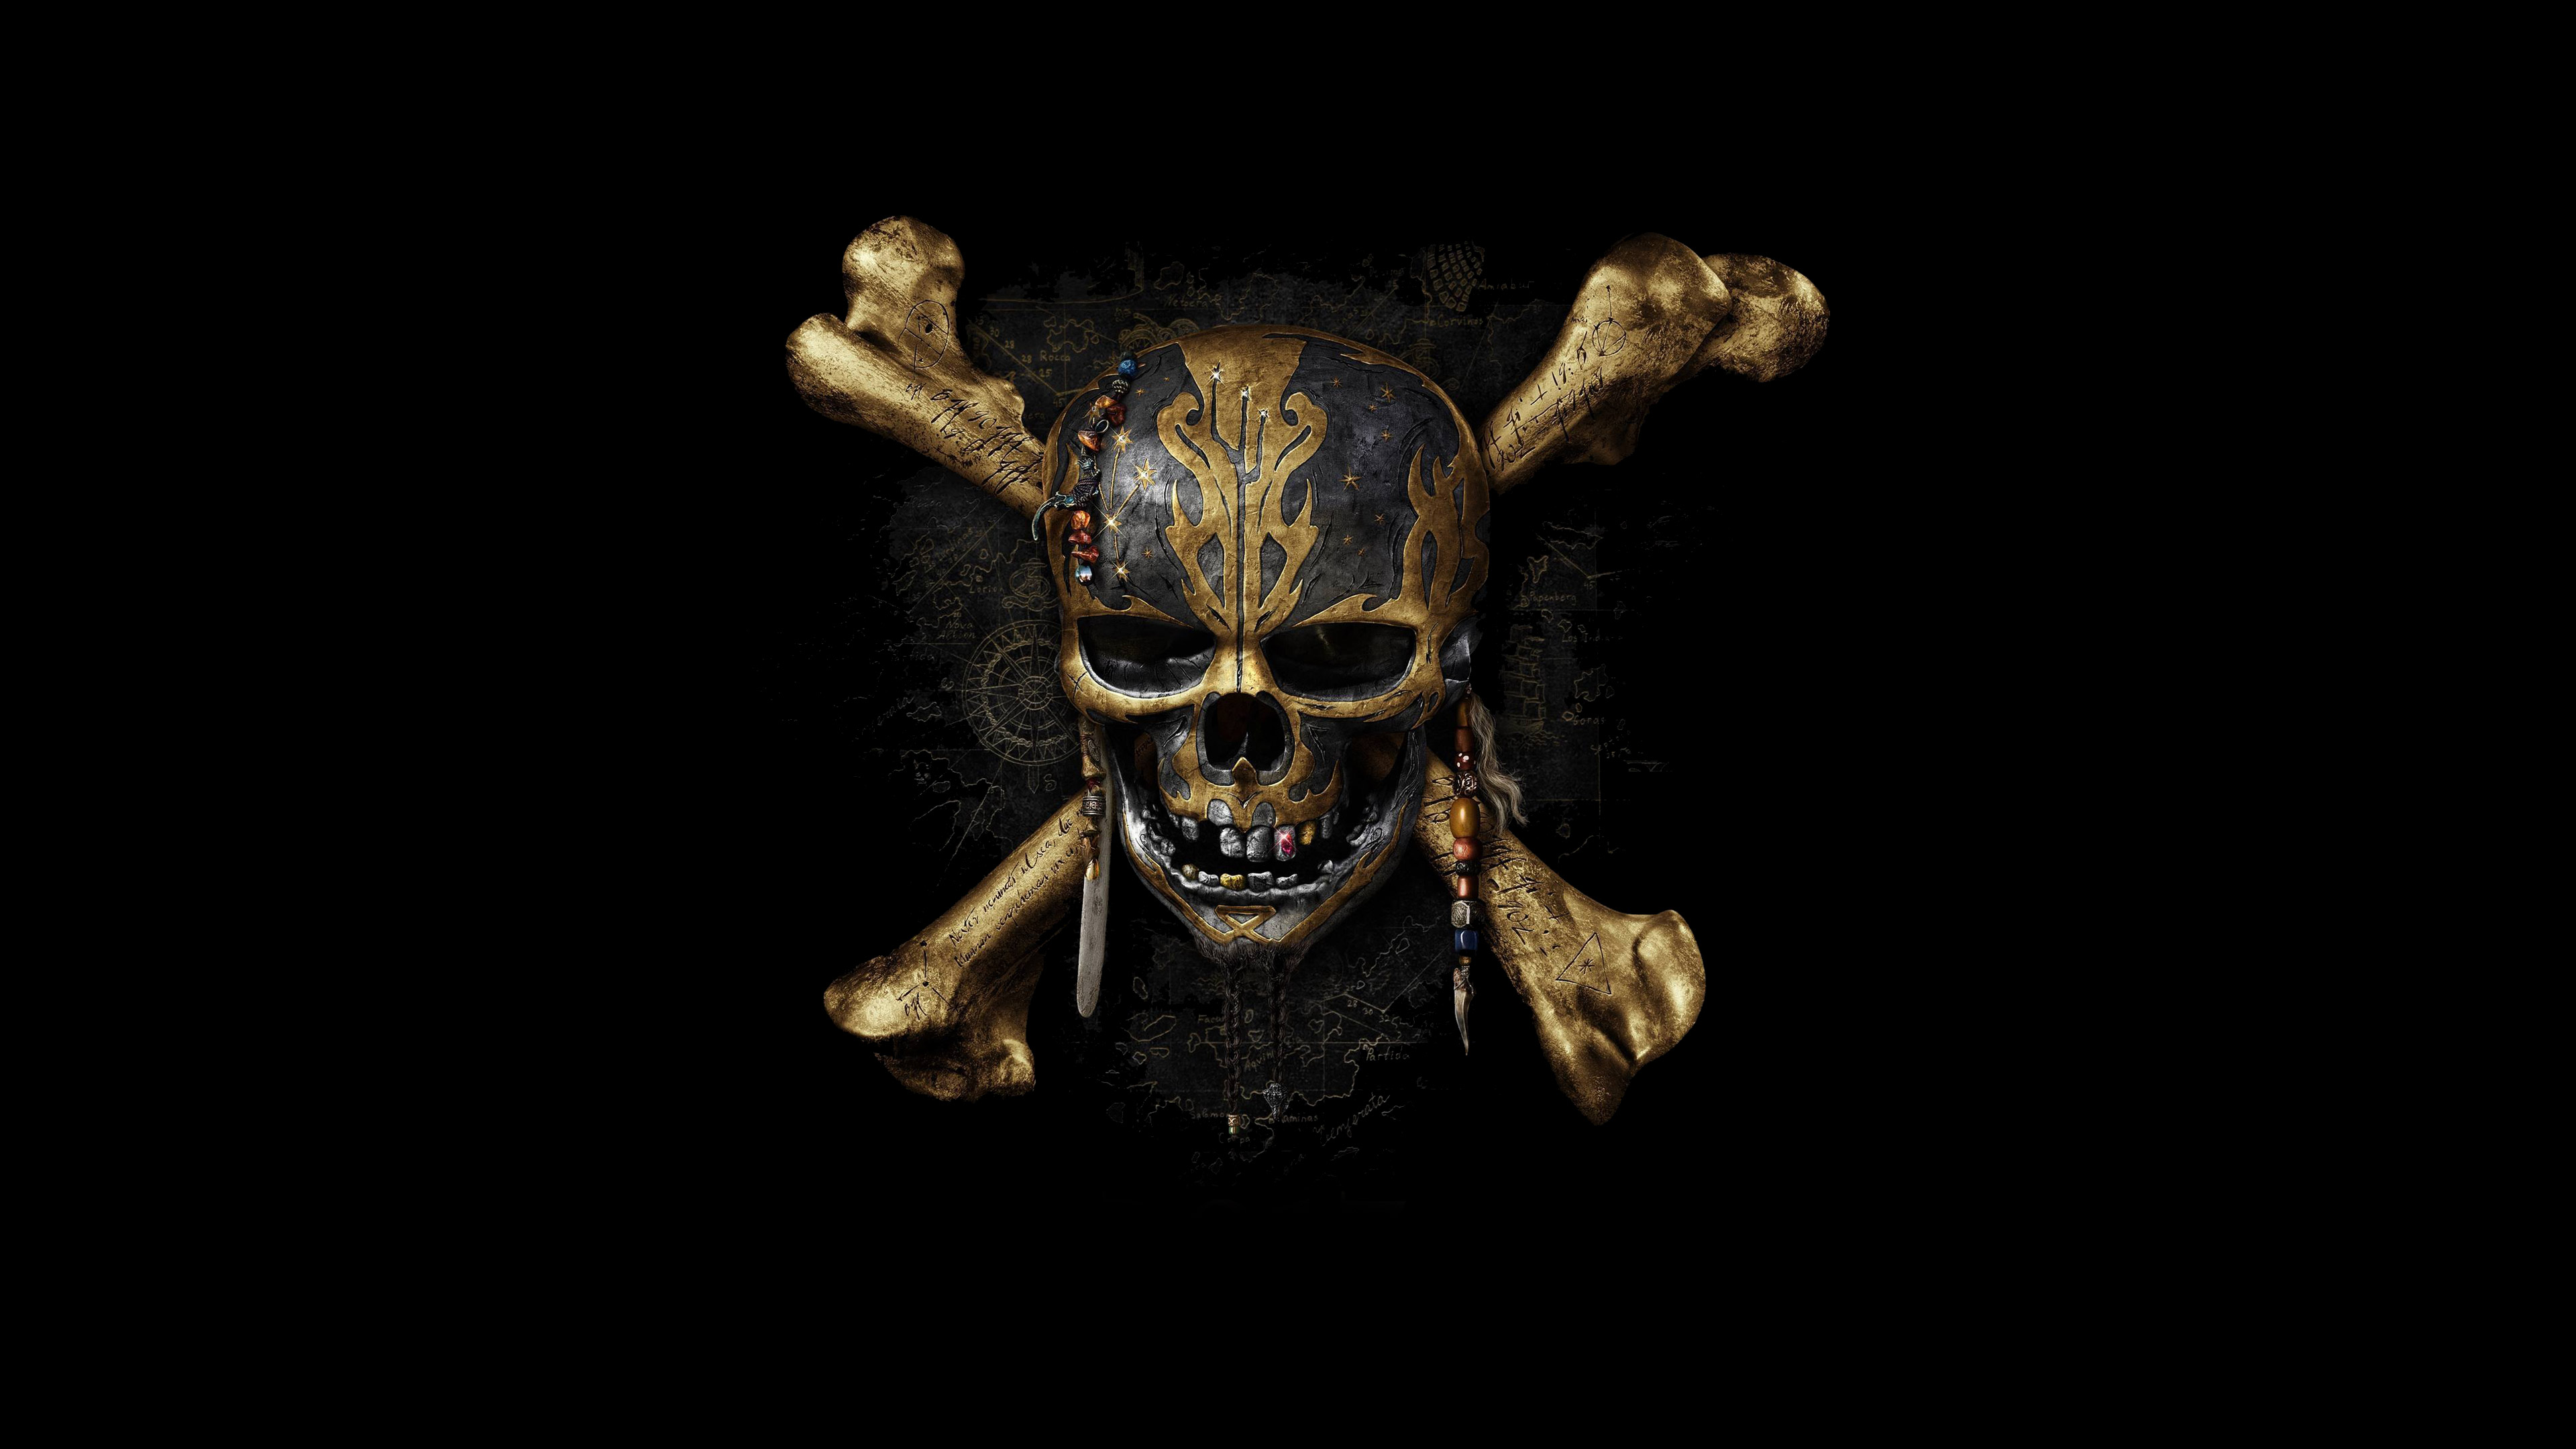 2017 pirates of the caribbean dead men tell no tales 1536400117 - 2017 Pirates of the Caribbean Dead Men Tell No Tales - skull wallpapers, pirates of the caribbean dead men tell no tales wallpapers, 4k-wallpapers, 2017 movies wallpapers